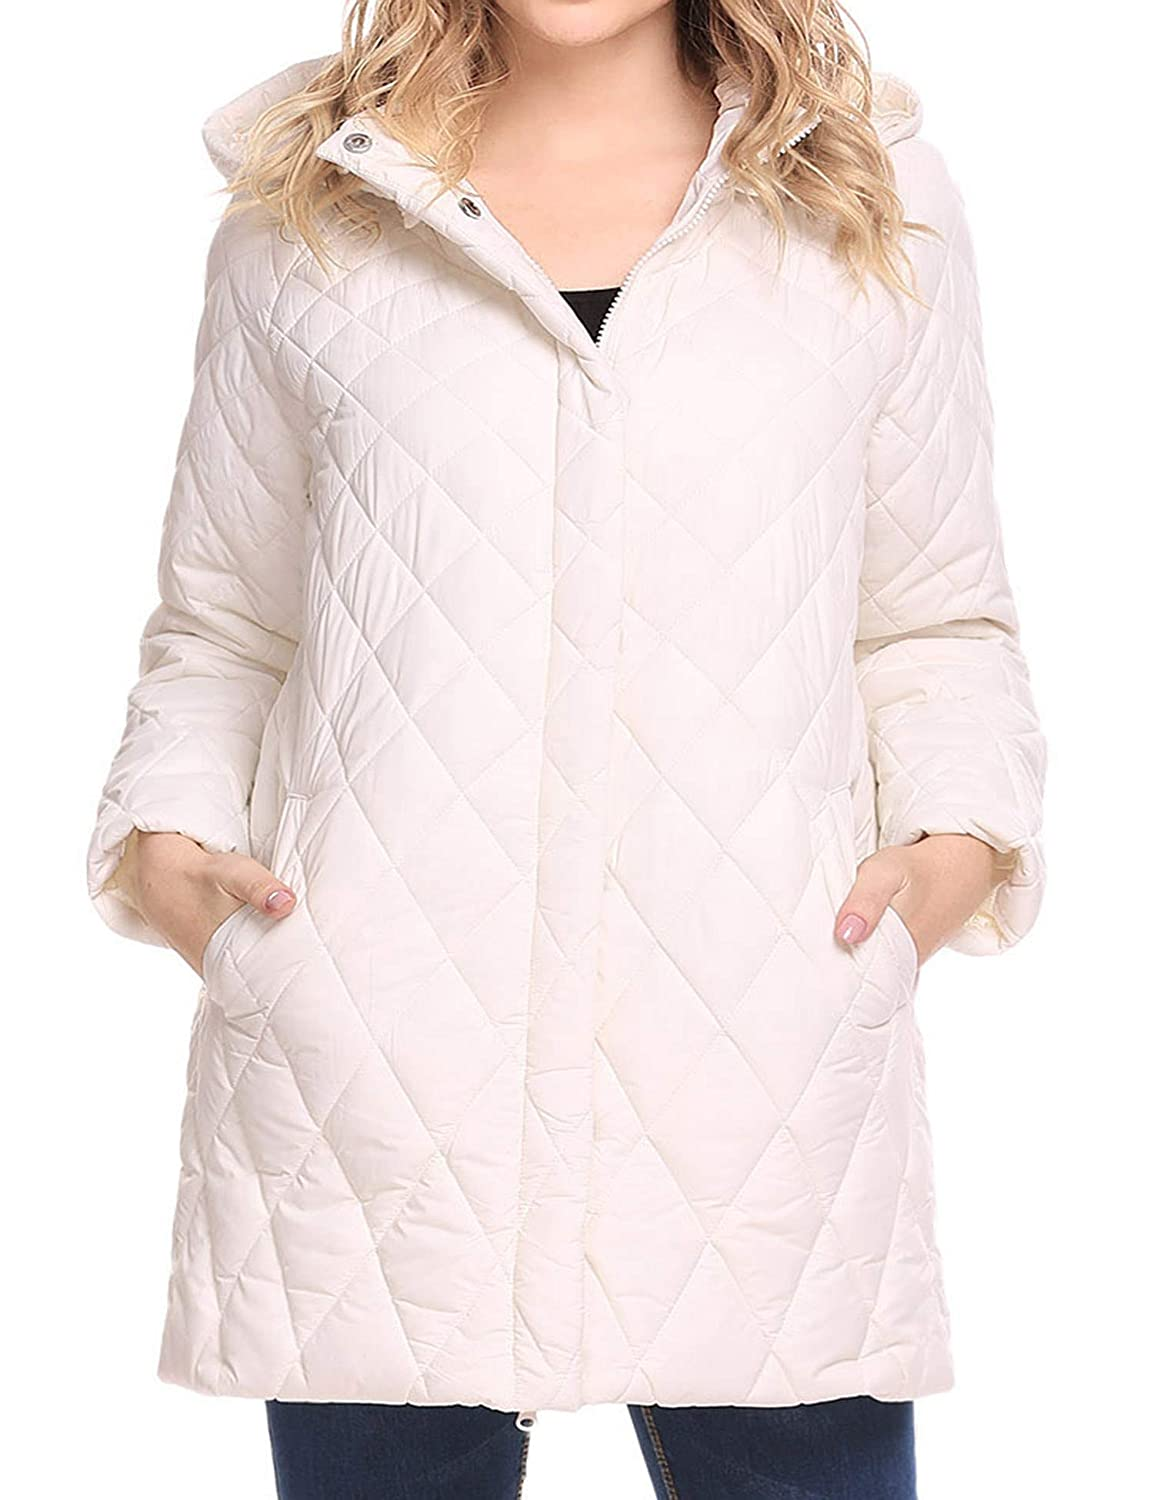 SummerRio Women's Winter Outwear Light Coat Quilted Puffer Parka Jacket w/Detachable Hood,S-XXL